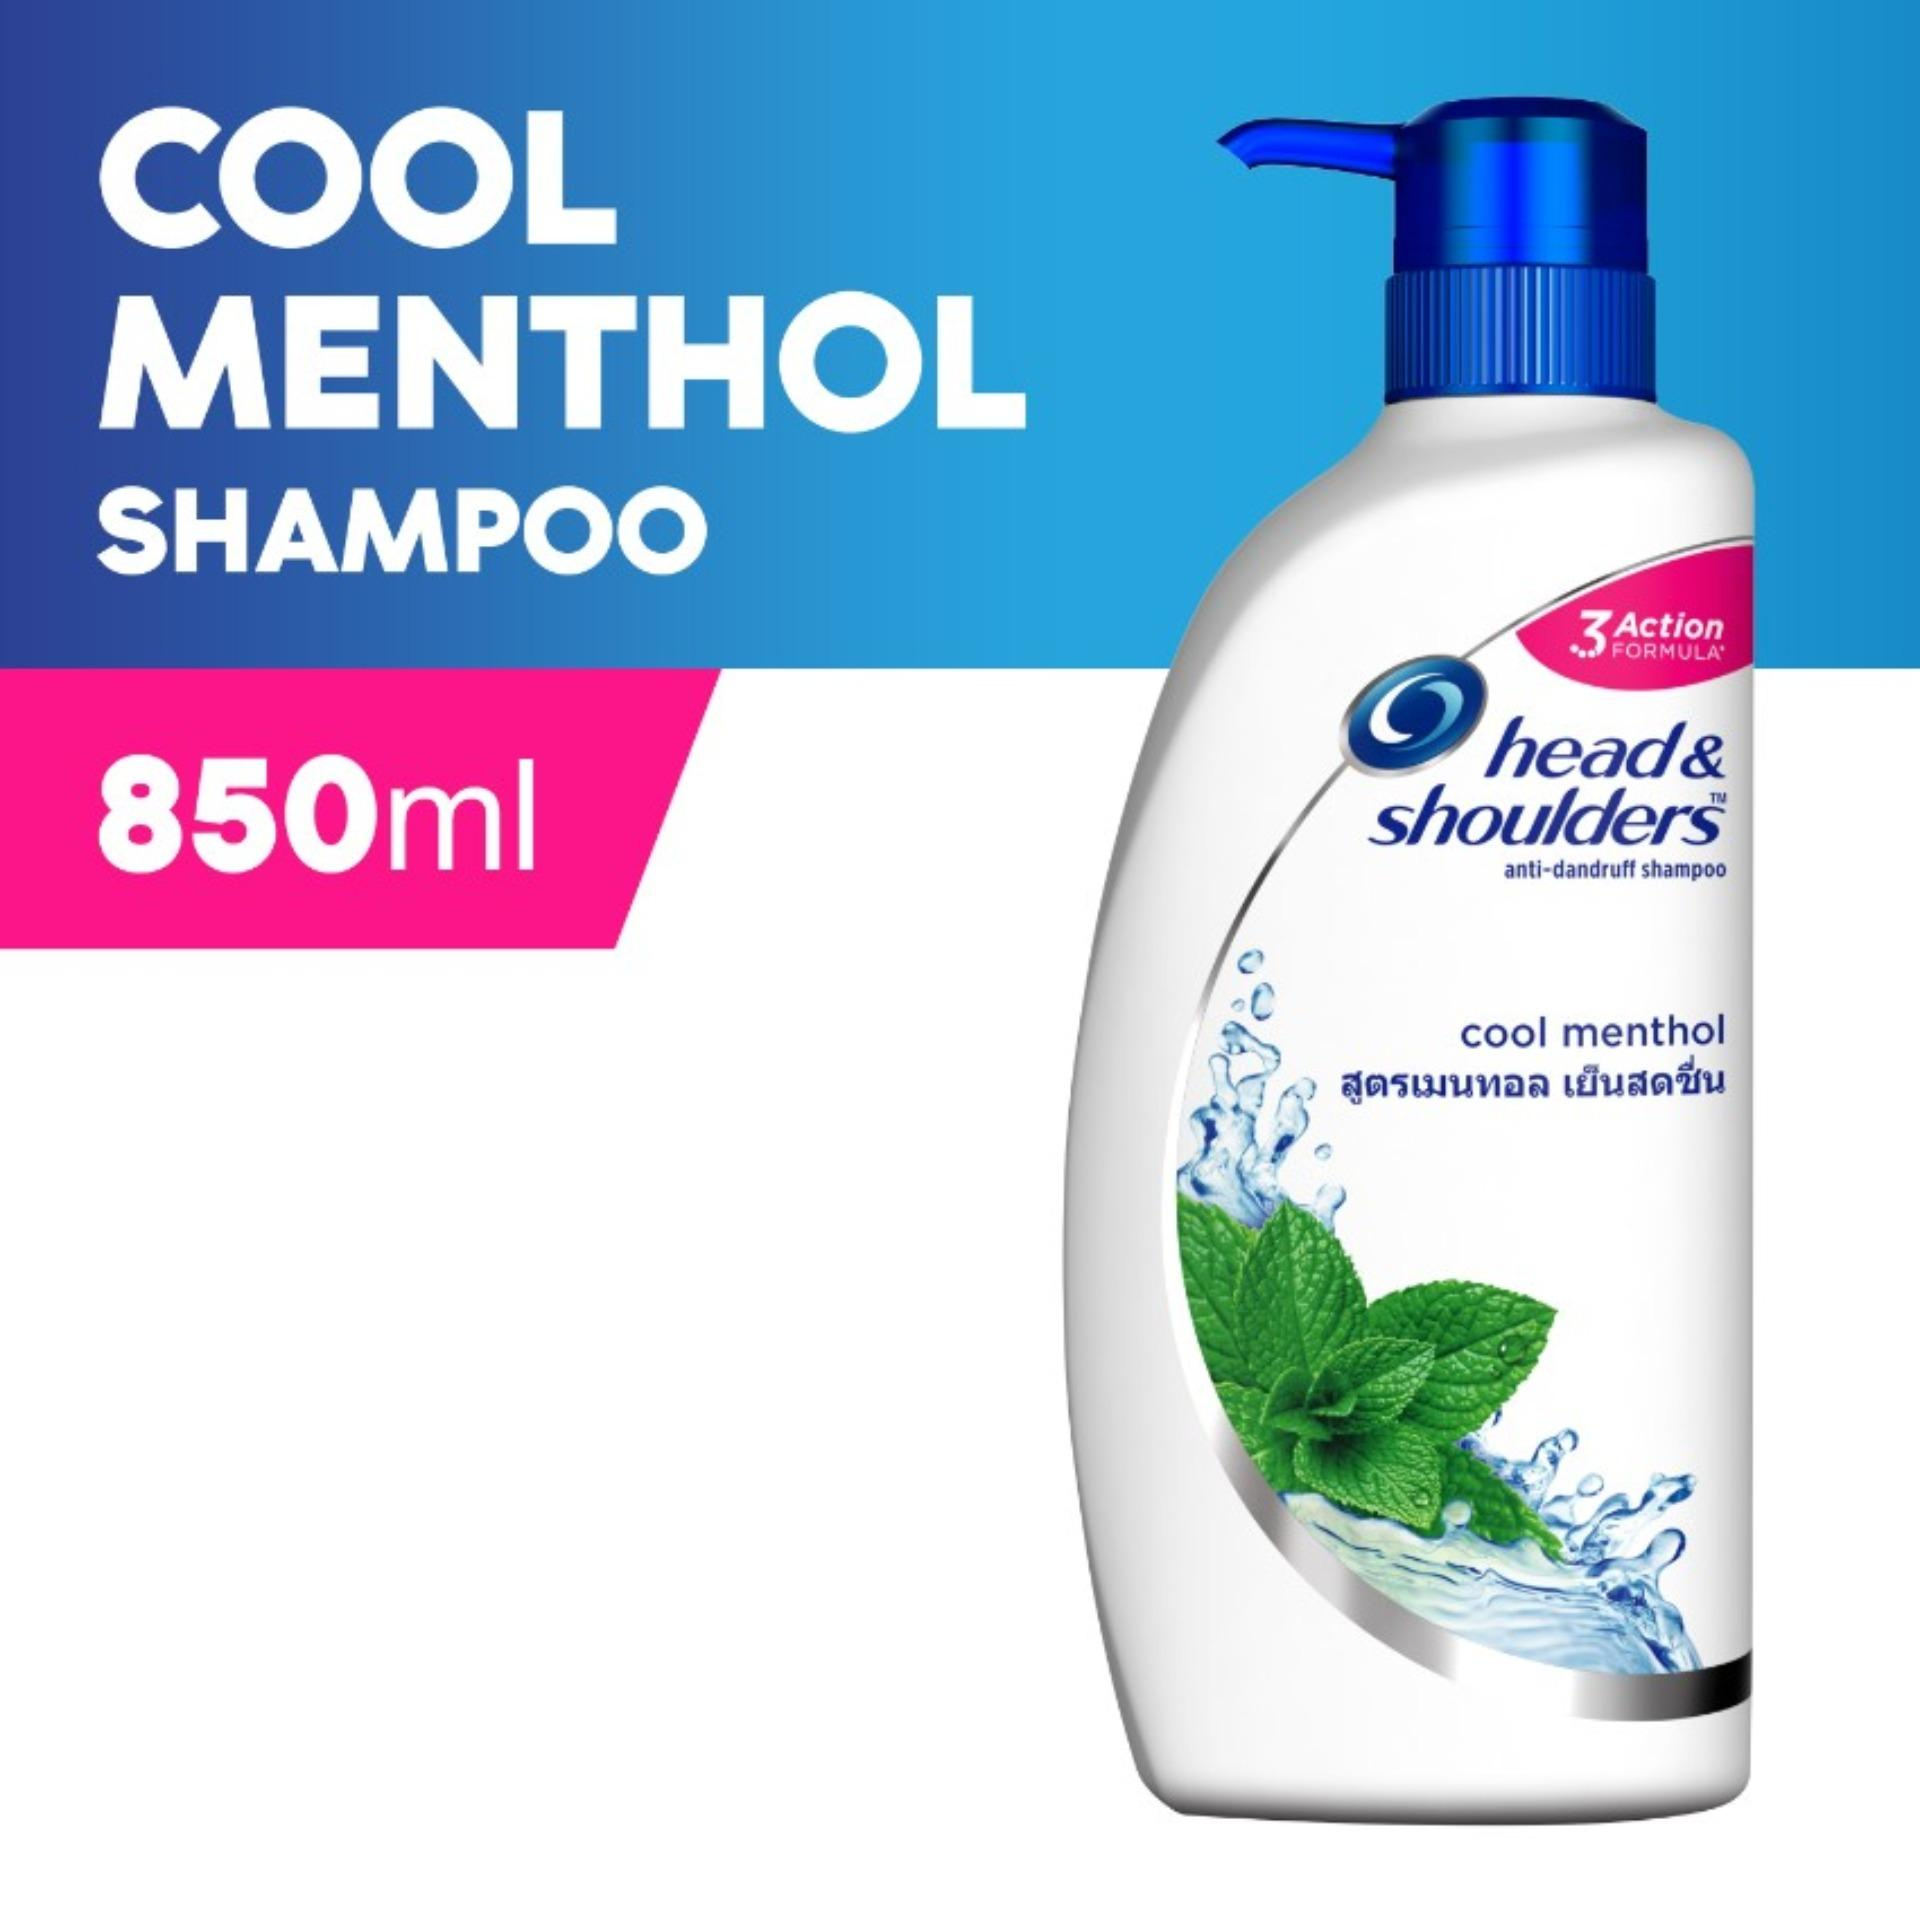 Head & Shoulders Cool Menthol Shampoo 850ml By Lazada Retail Head & Shoulders.